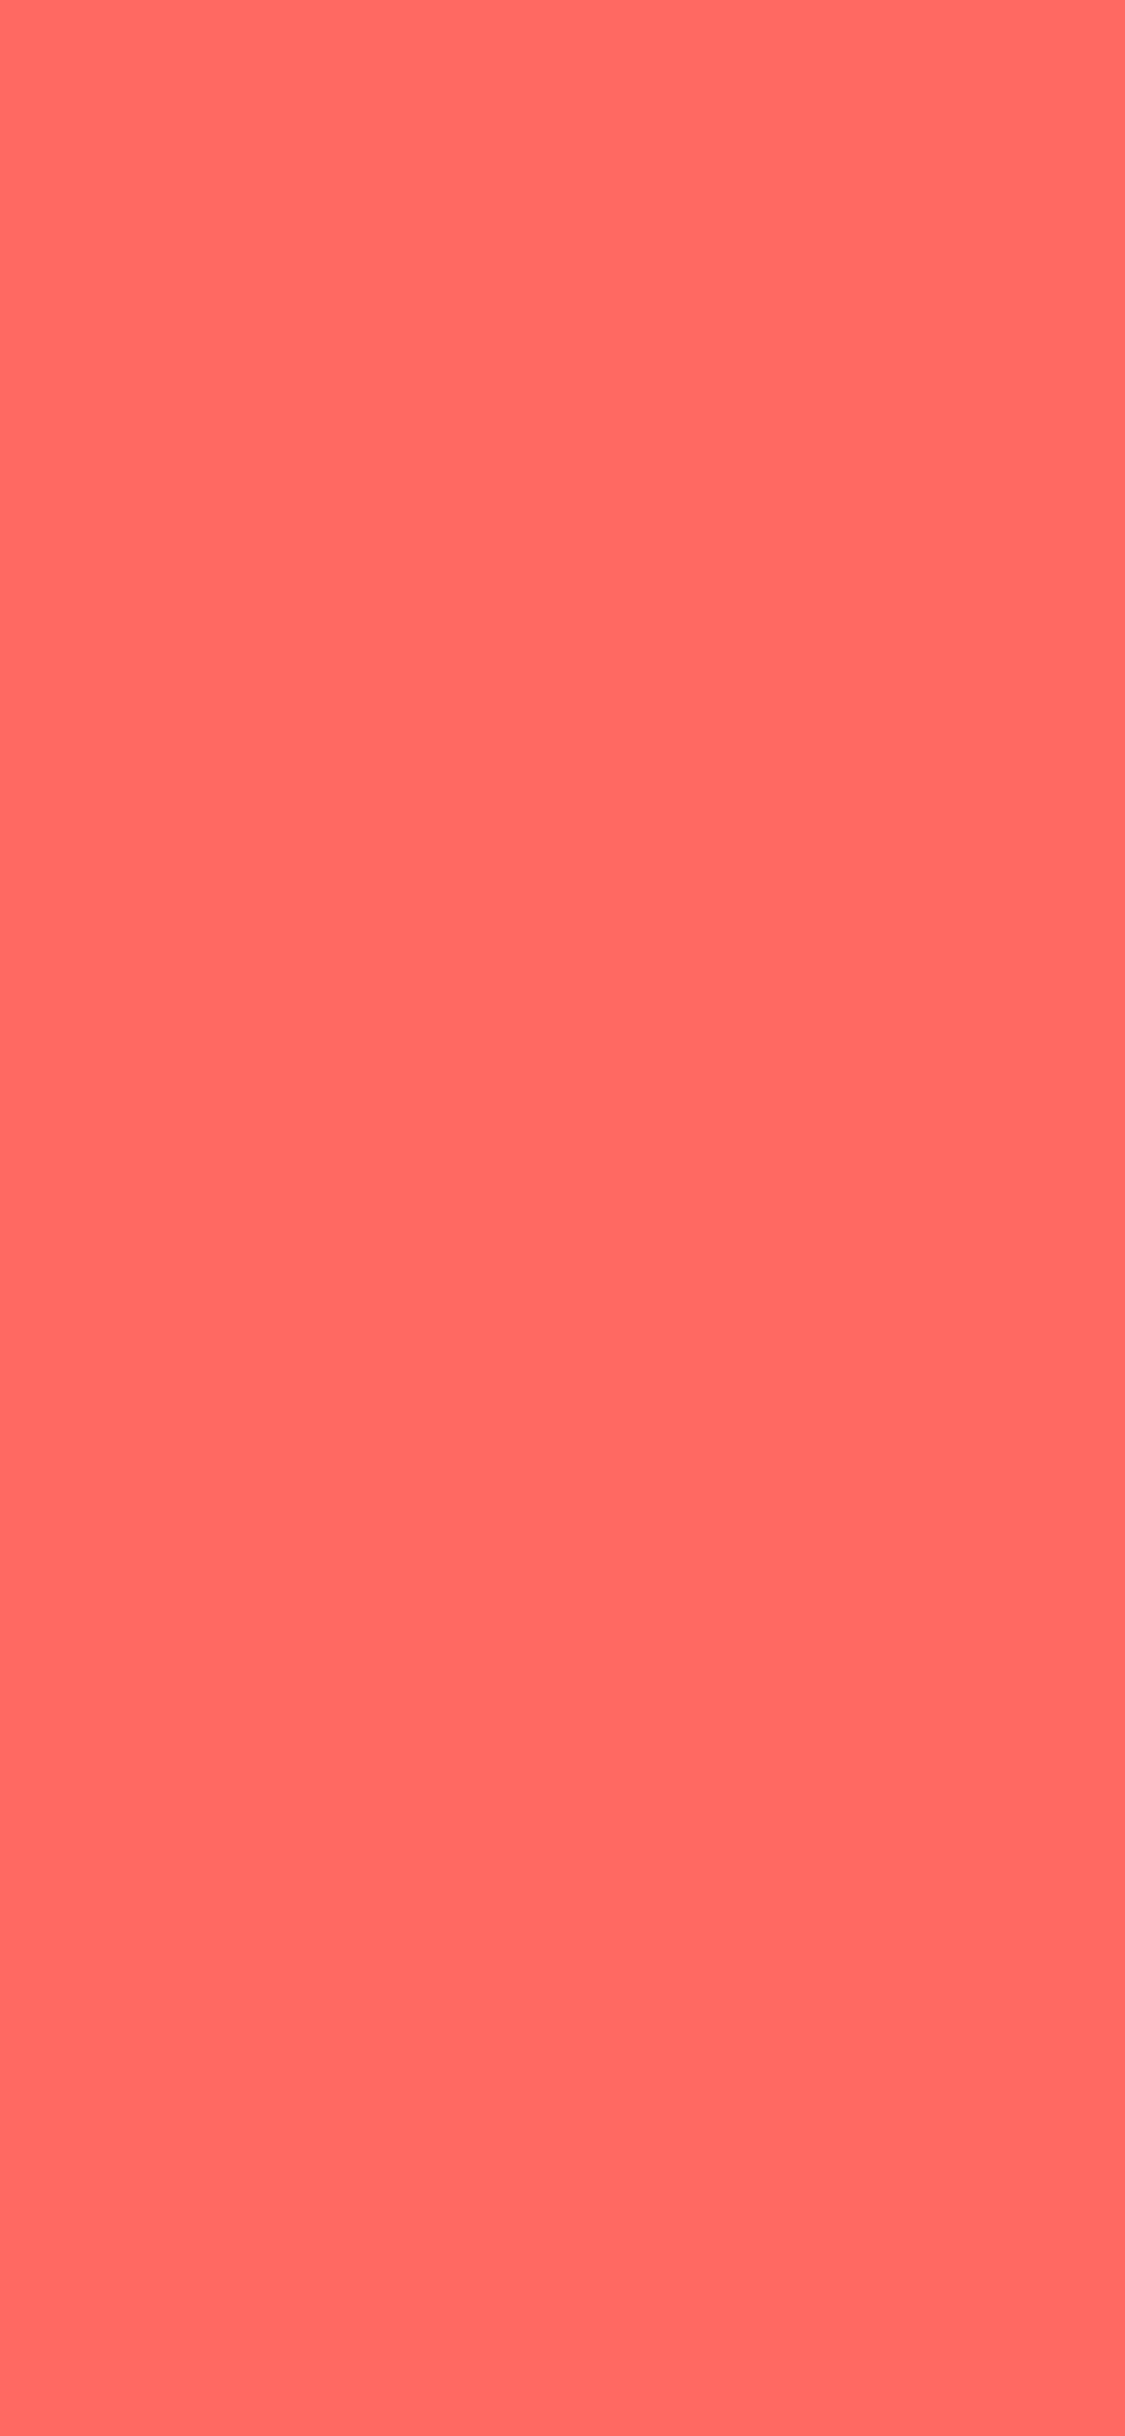 1125x2436 Pastel Red Solid Color Background